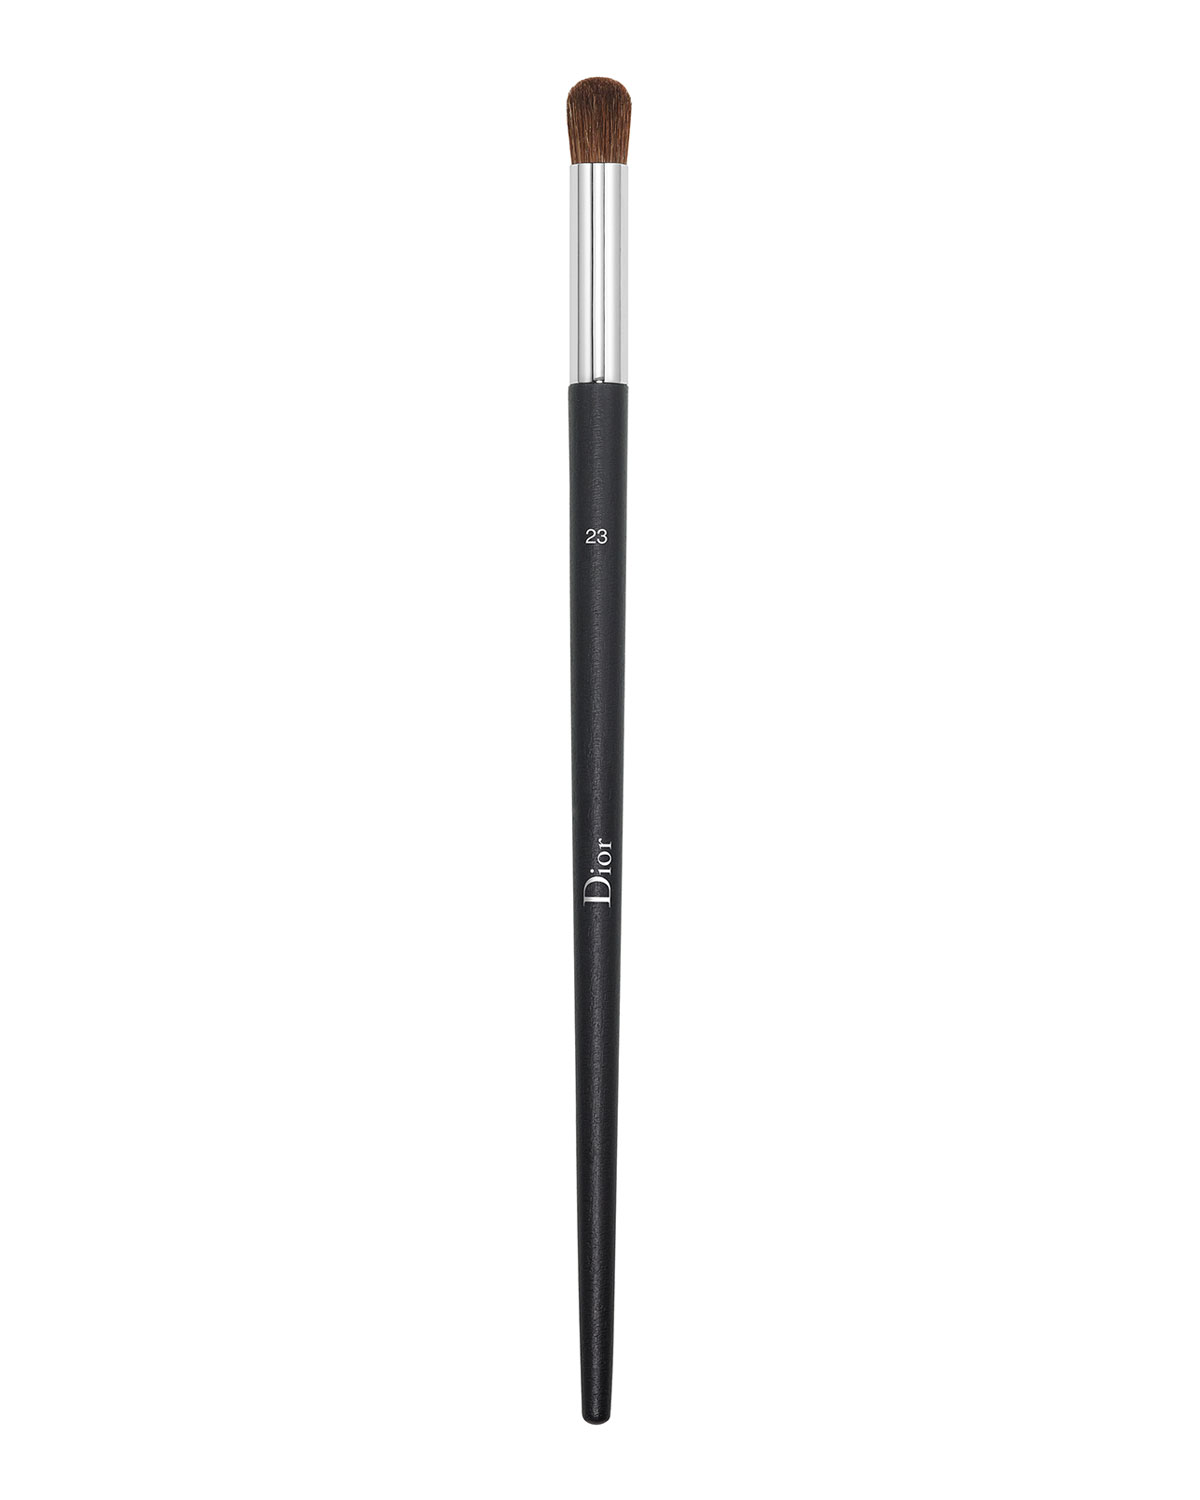 Dior Beauty Smudging Brush